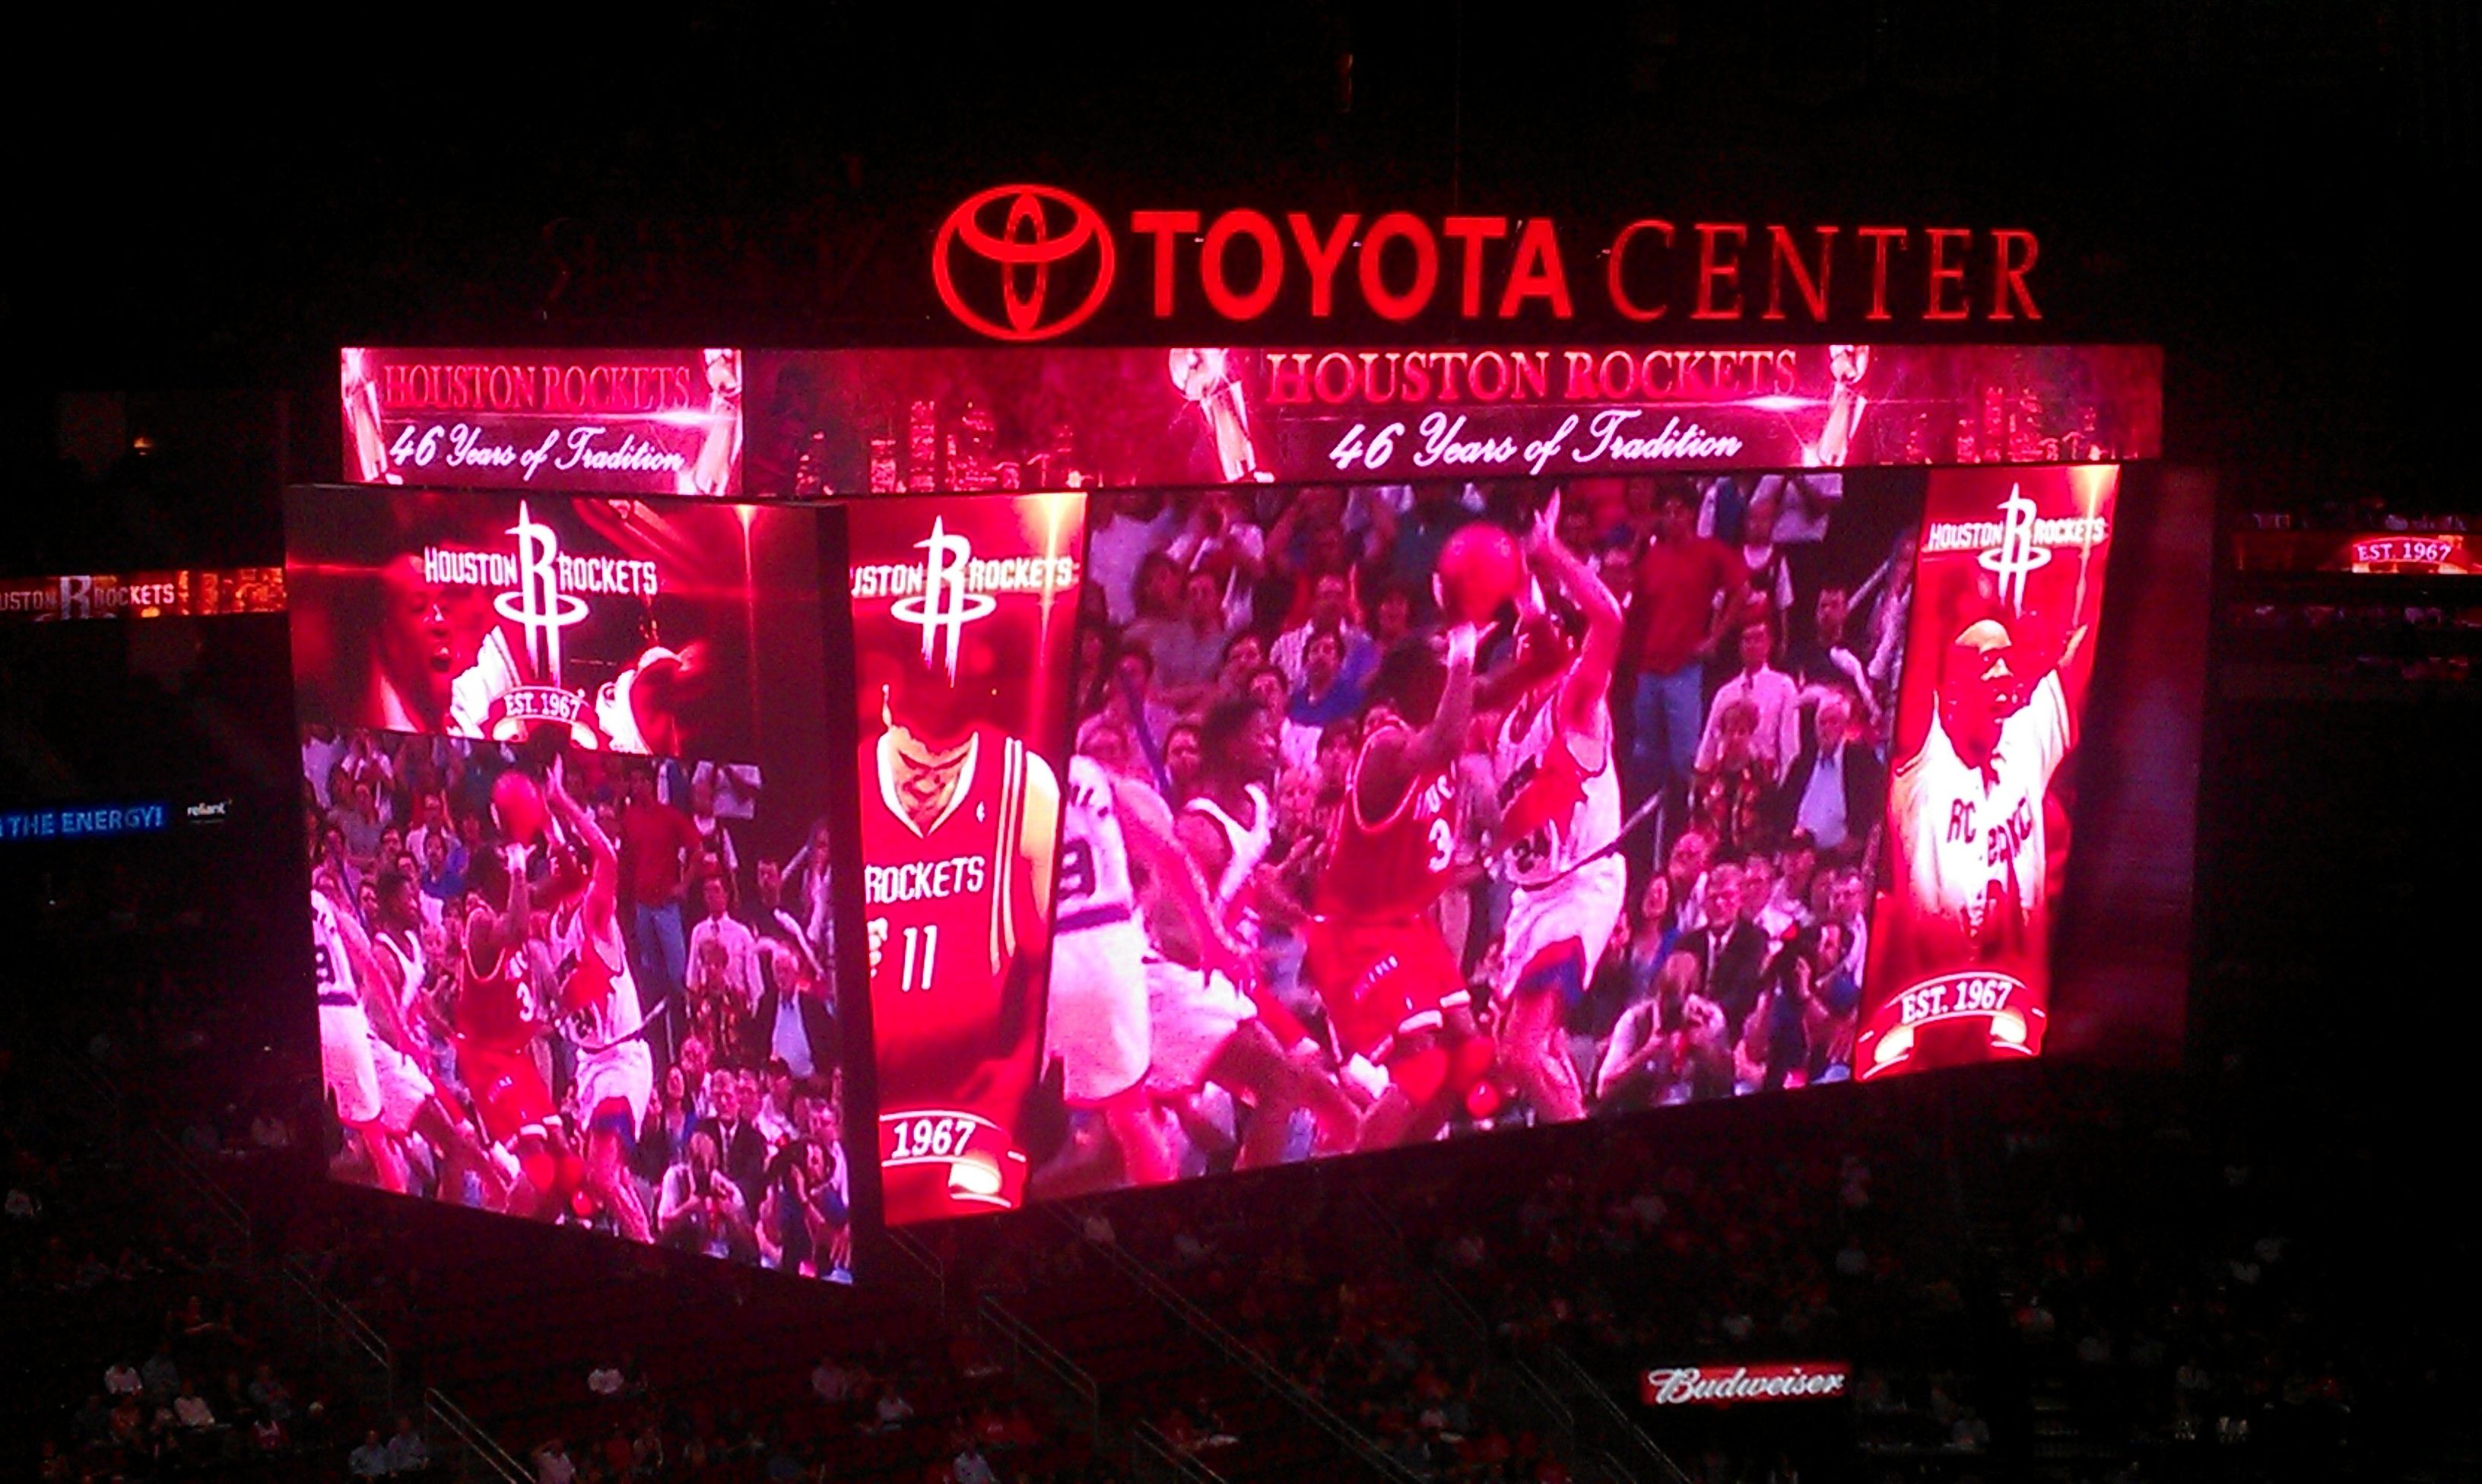 The New Toyota Center Scoreboard Is Unbelievable 4 Huge Intertwined Big Screens That Display The Game Stats And 2 Camera Angl Toyota Center Scoreboard Toyota